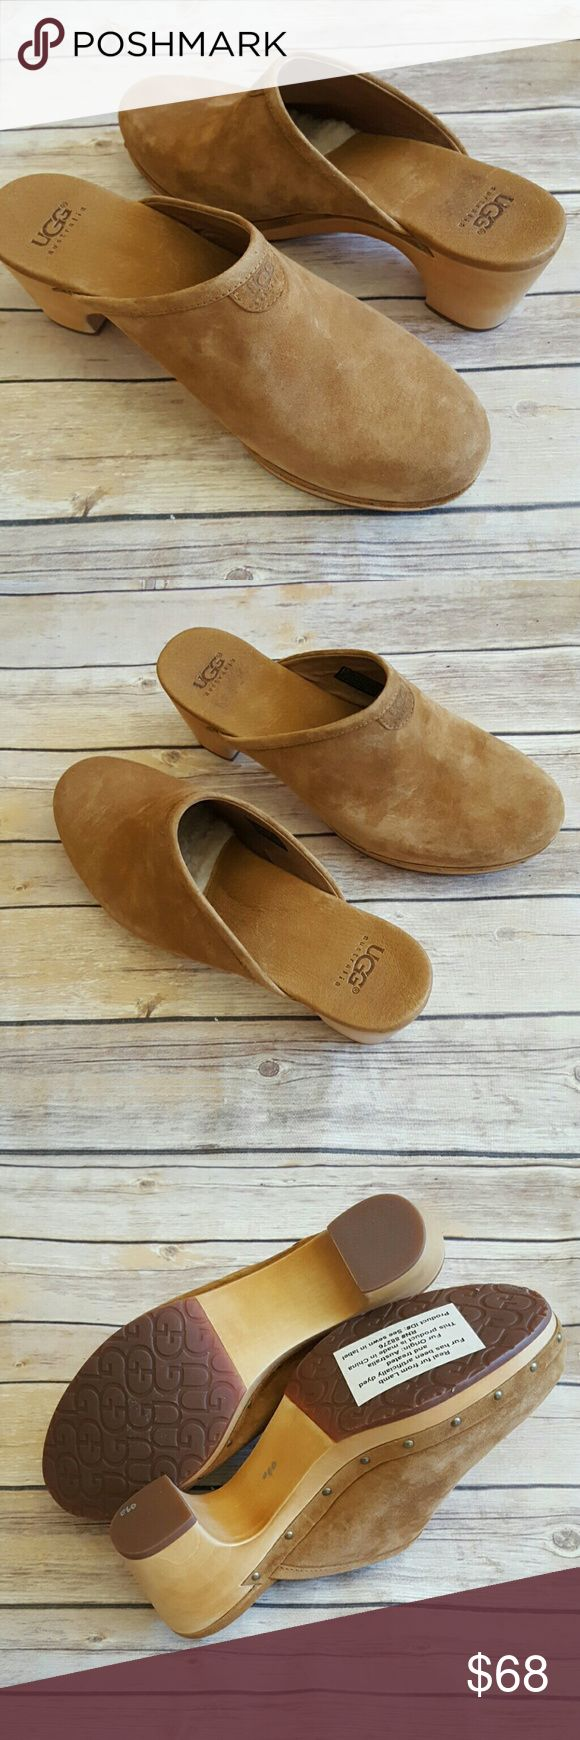 """Ugg W Abbie 5772 Size 11 Shoes Tan Clog Mule Shoe Nearly new in box Ugg W Abbie Size 11 Mule Shoe.  These were a neighbors and have been tried on, worn around the house and sat back in the closet until she went to move and decided it was time to part with them.    Measure 11"""" from toe to heel.  If you have any questions please feel free to ask. UGG Shoes Mules & Clogs"""